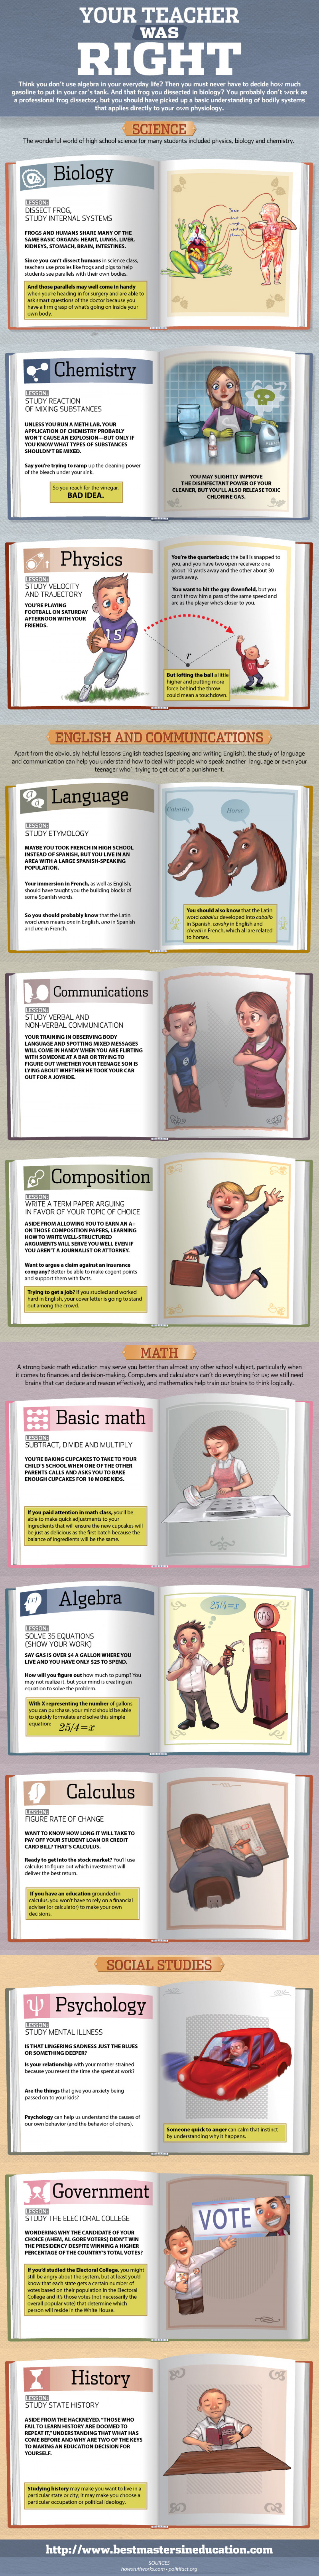 Your Teacher Was Right Infographic